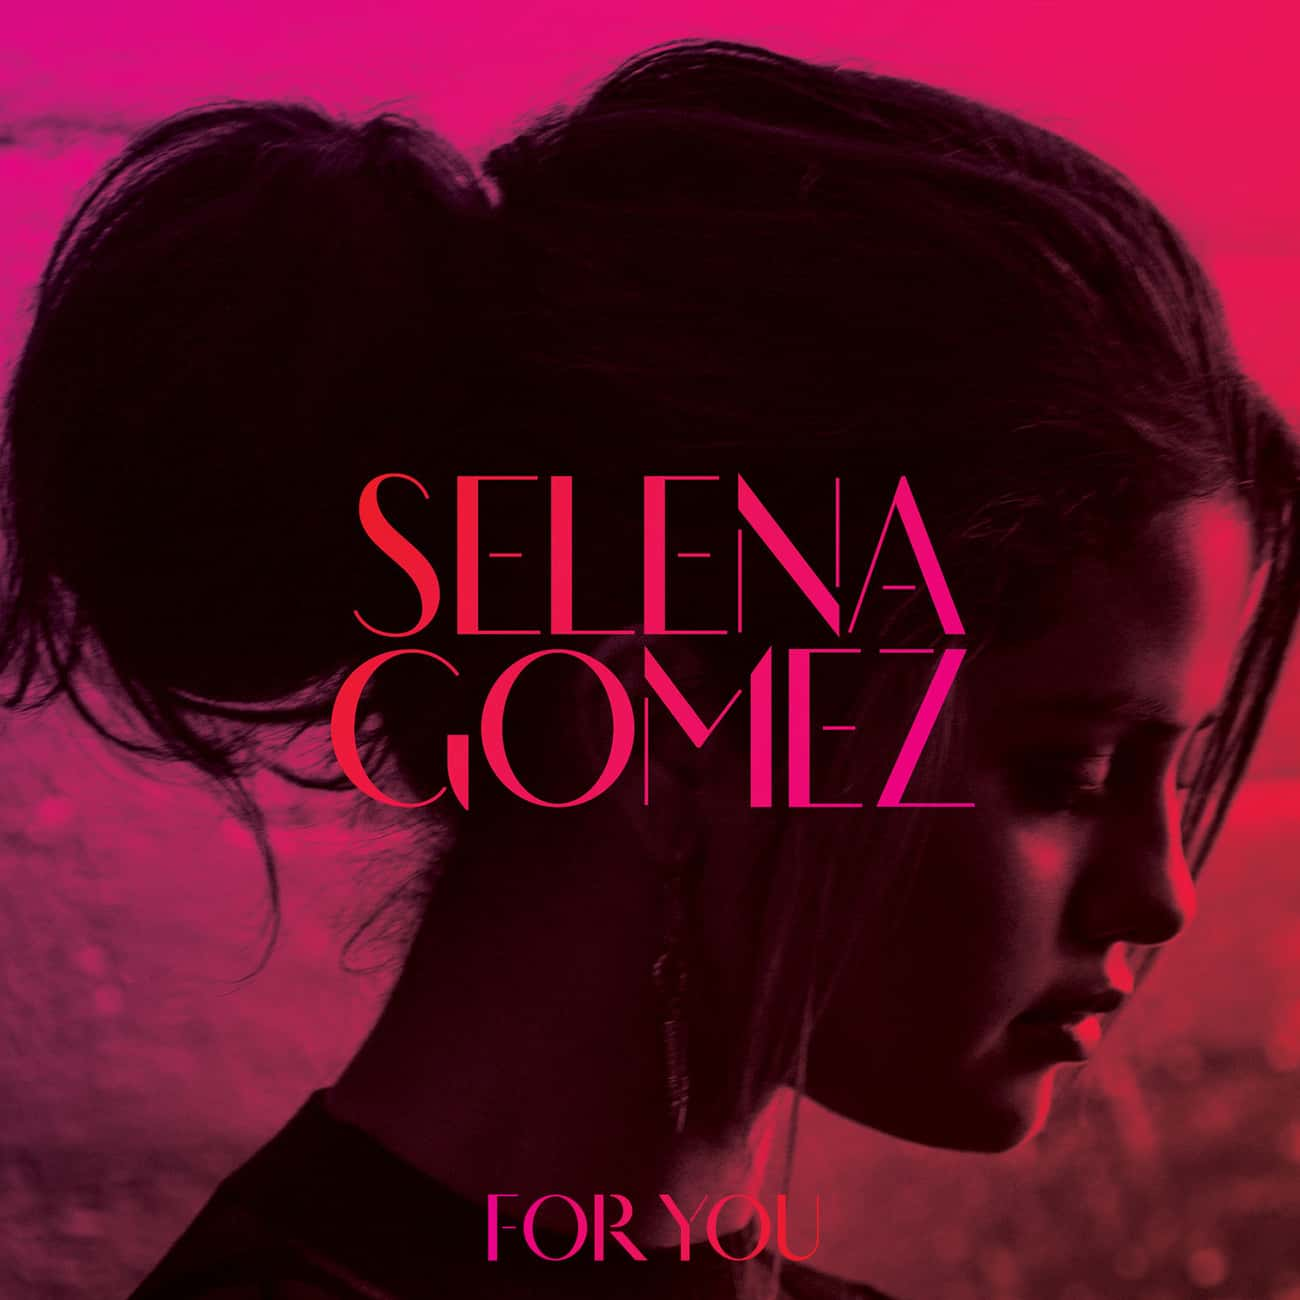 For You is listed (or ranked) 4 on the list The Best Selena Gomez Albums, Ranked